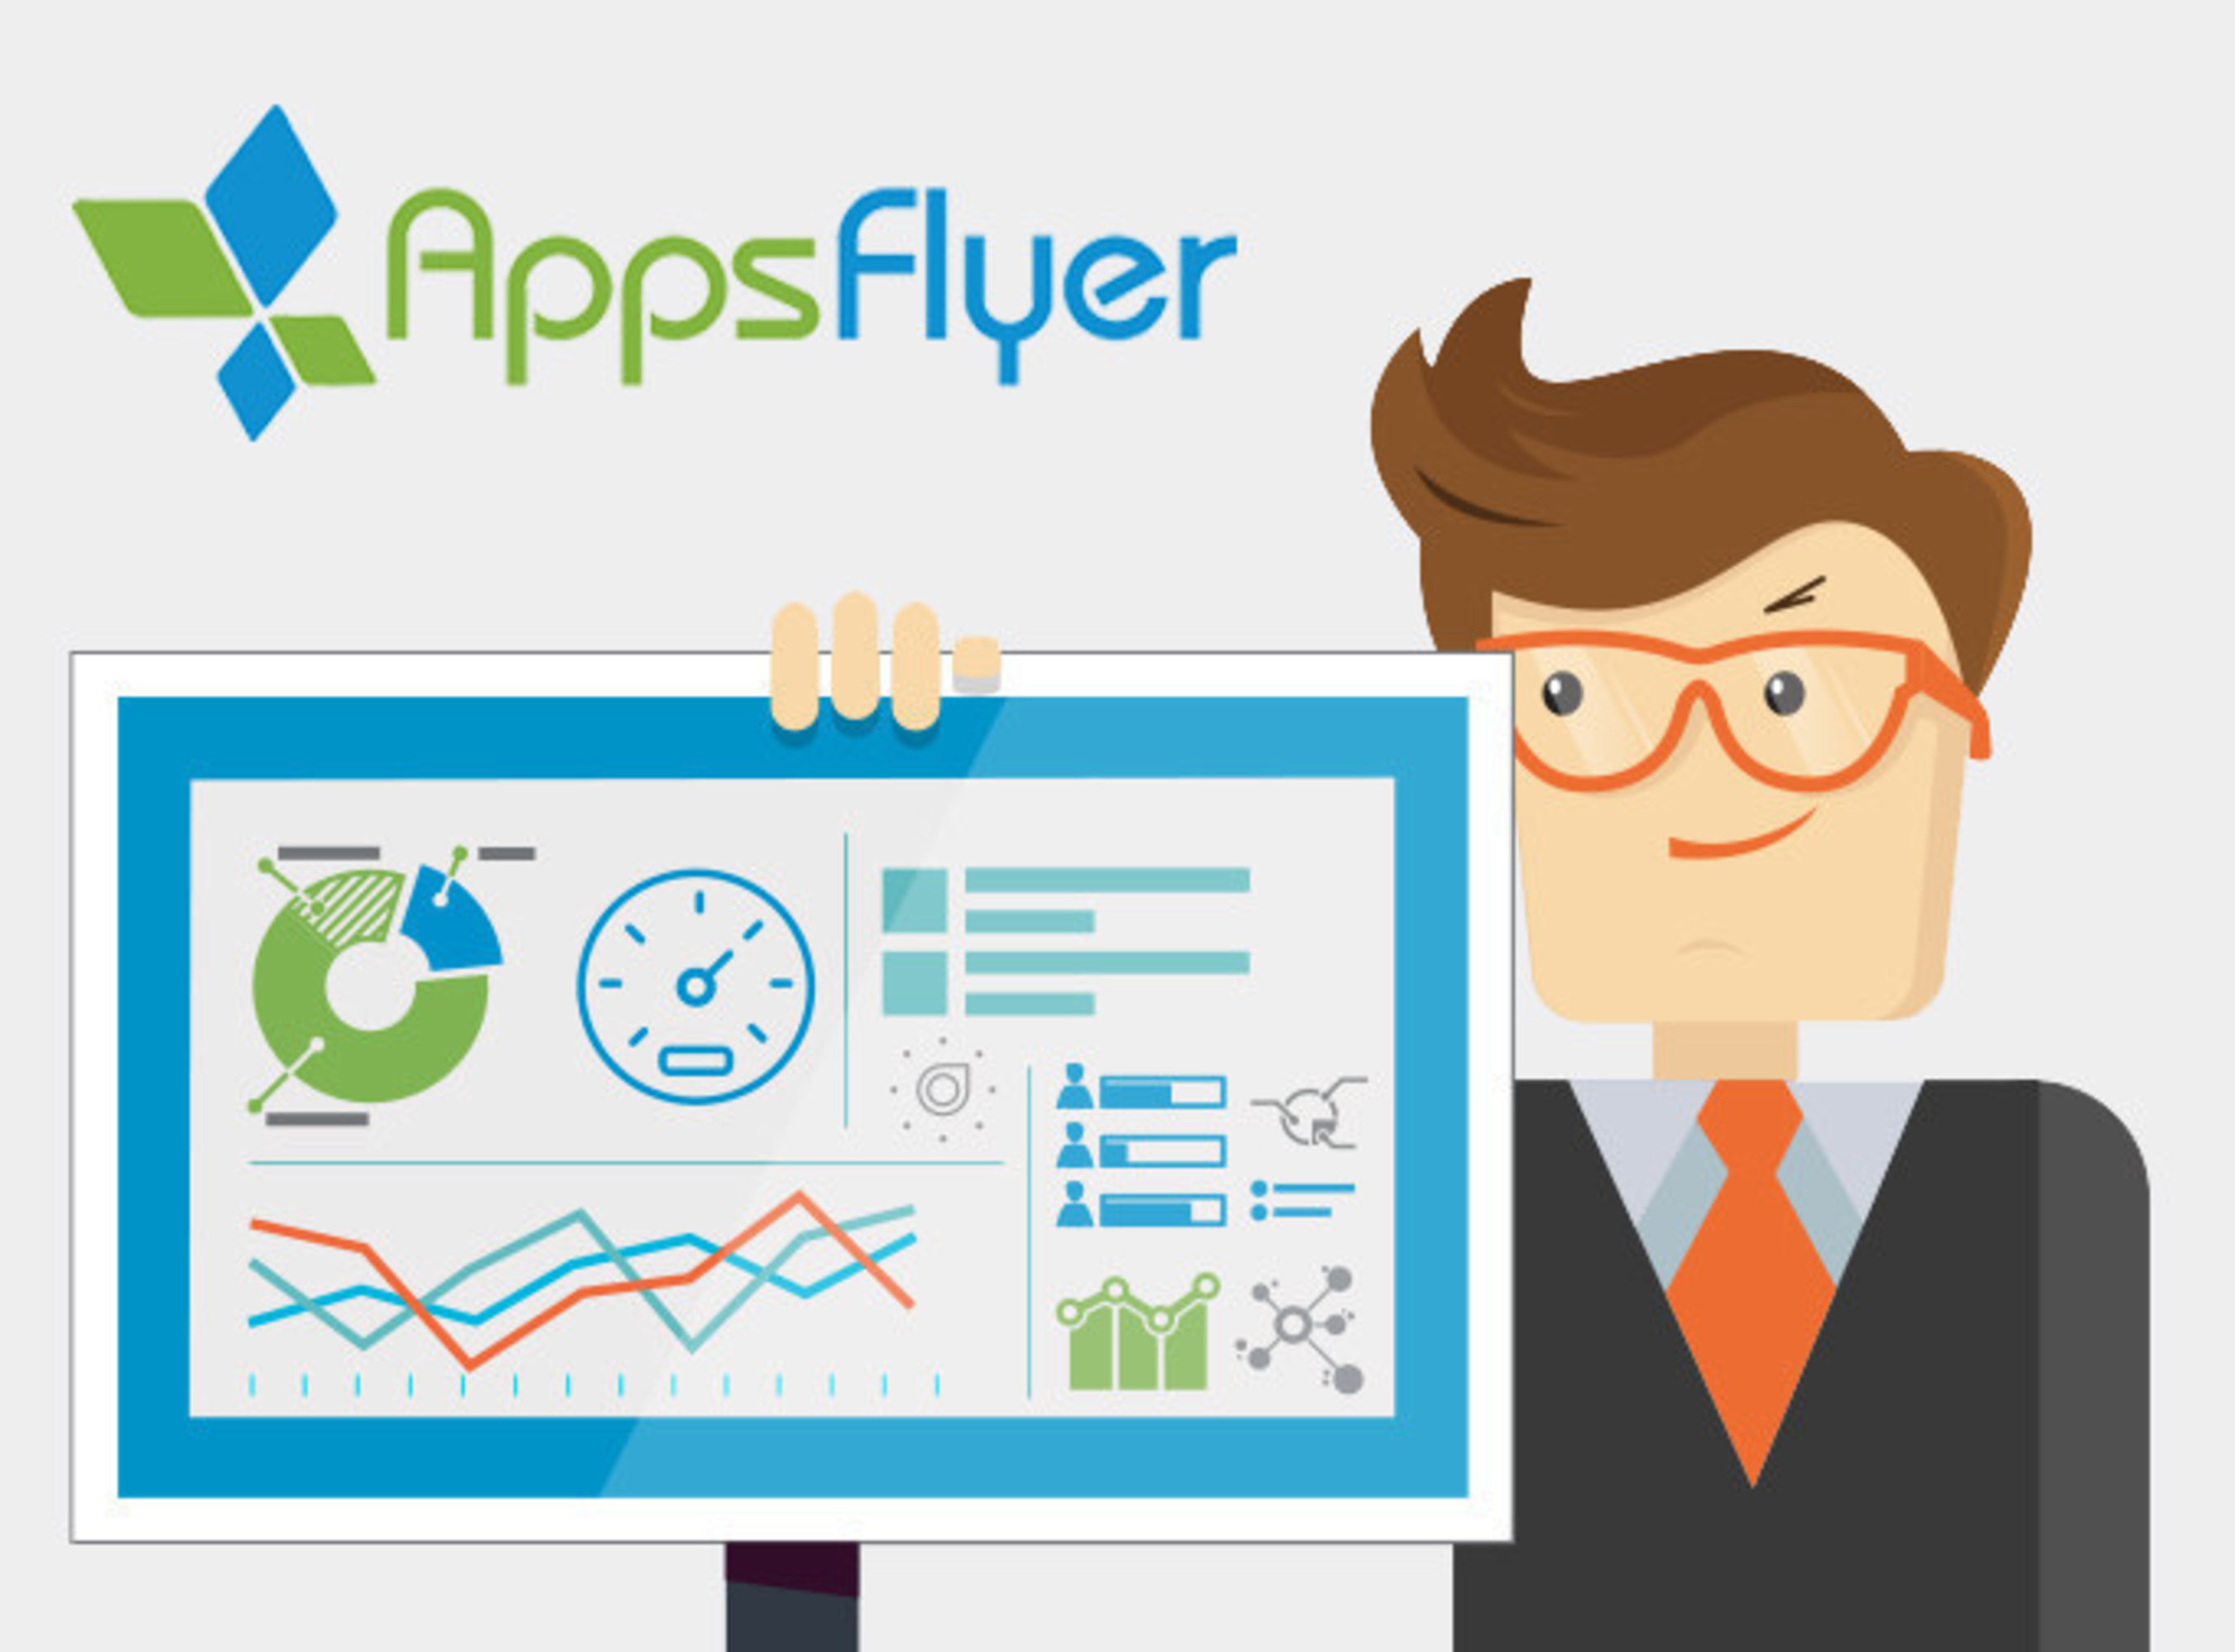 AppsFlyer's NativeTrack(TM) technology provides app marketers, brands and agencies with unbiased, independent measurement of mobile ad campaigns.